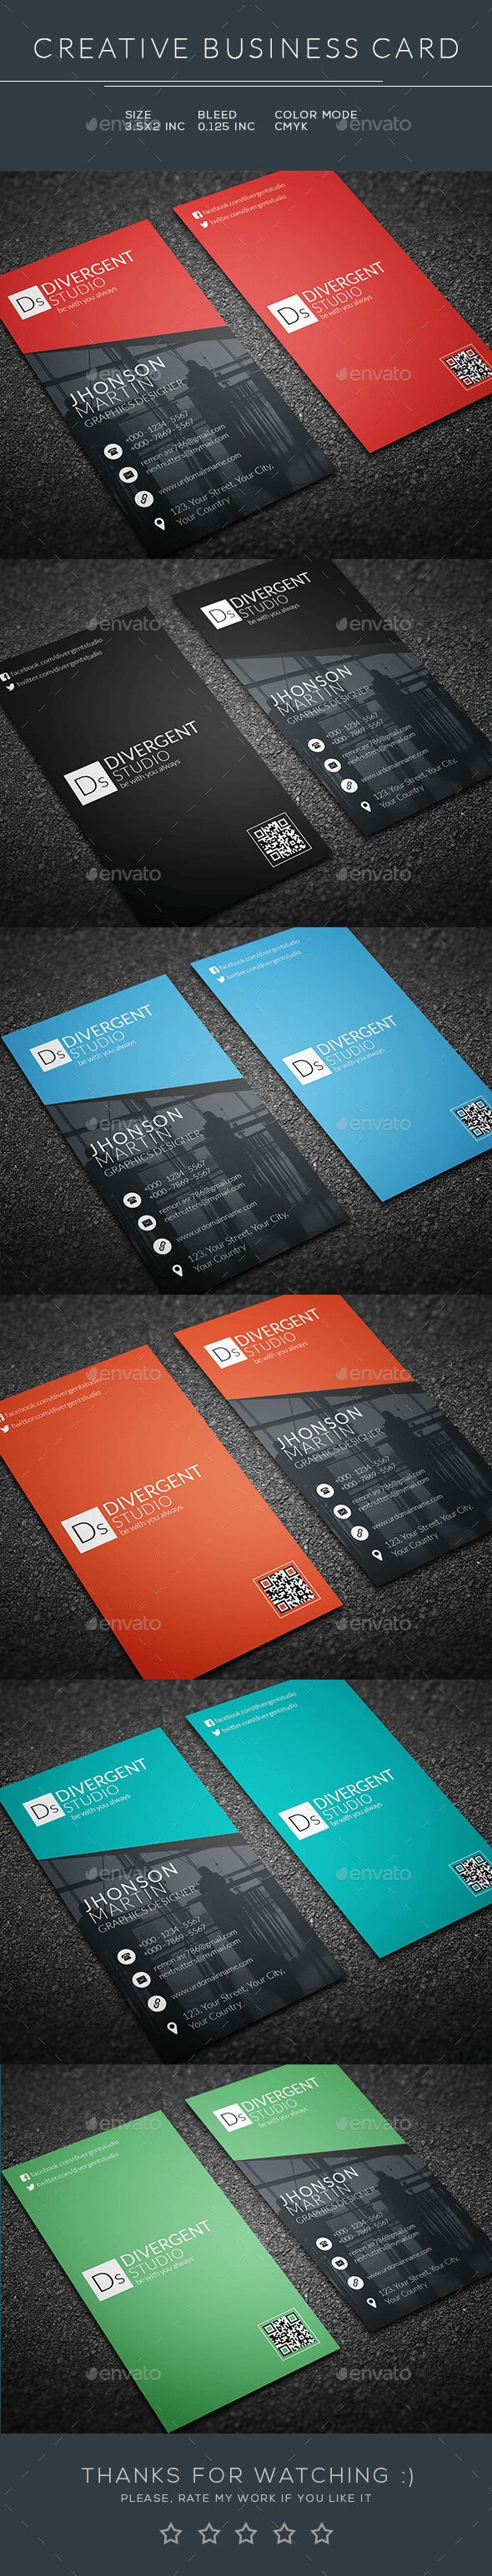 218 best business card images on pinterest business cards business card template psd download here httpgraphicriver reheart Gallery